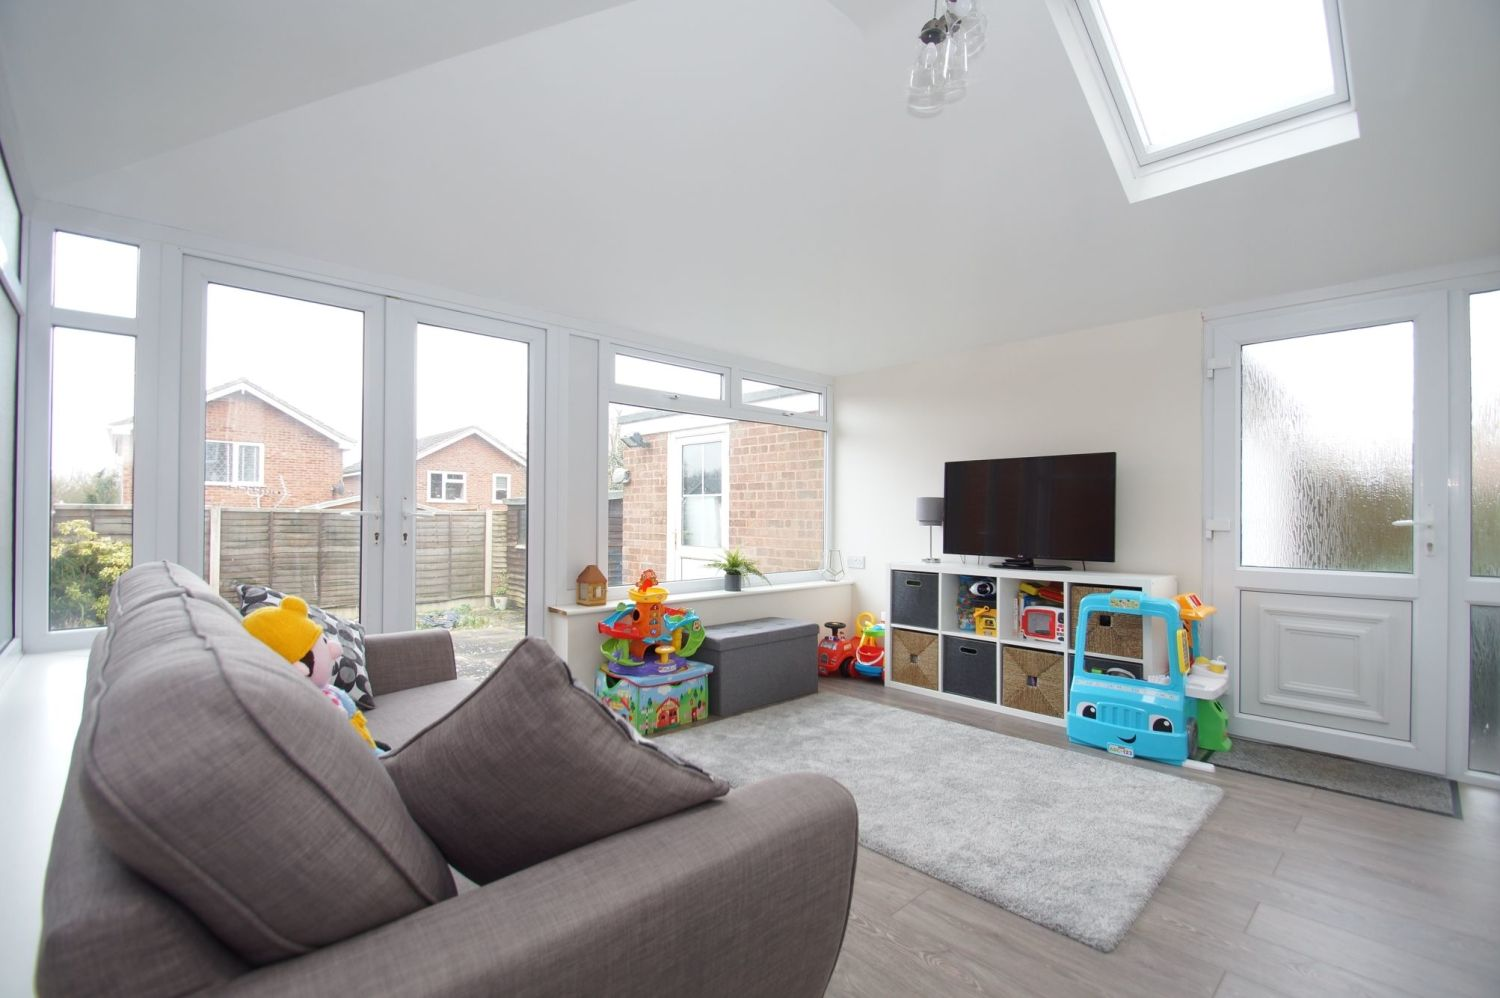 3 bed detached for sale in Painswick Close, Oakenshaw  - Property Image 6